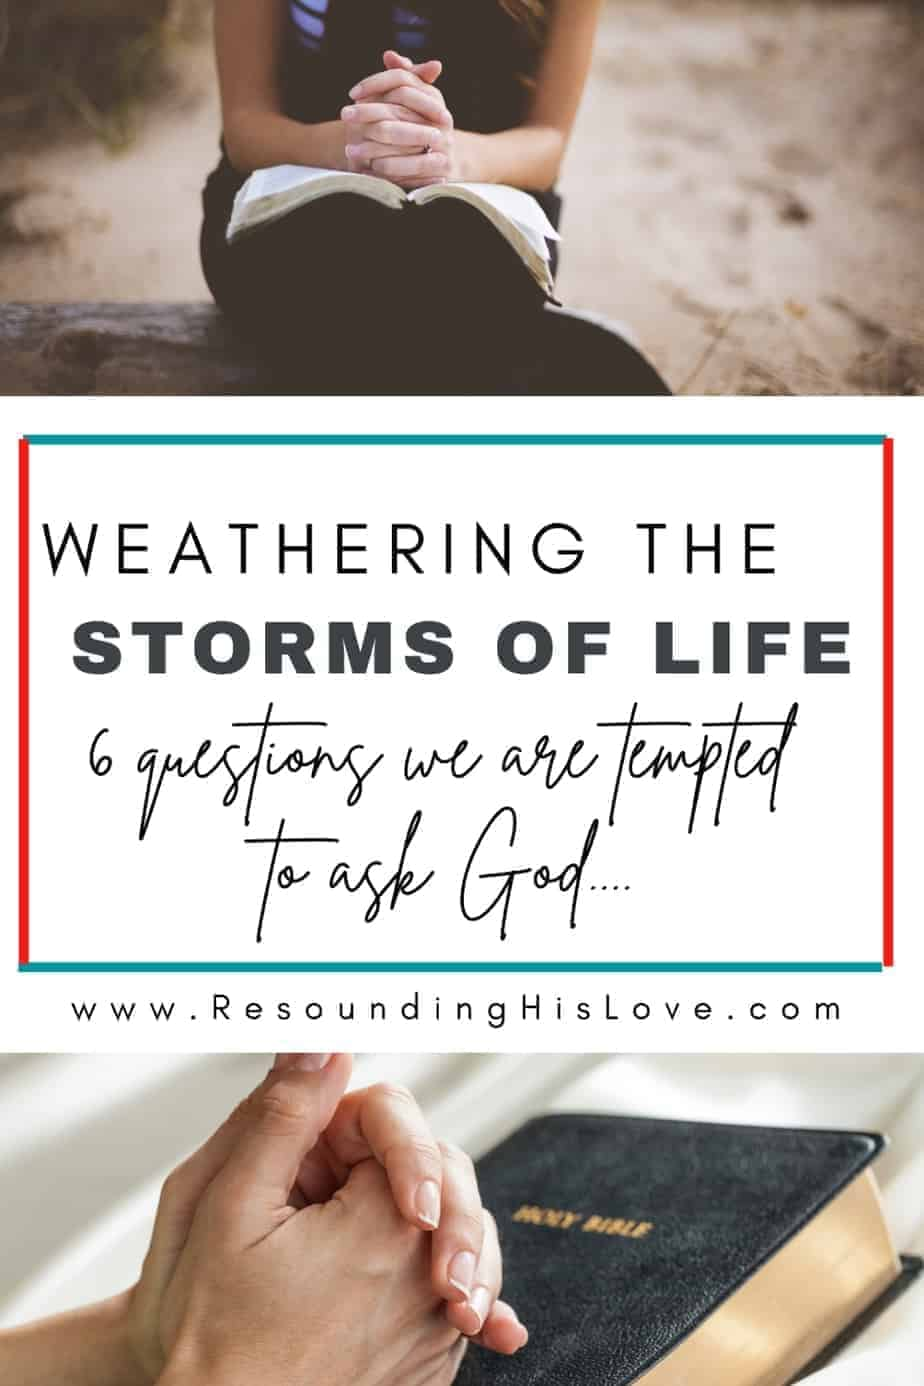 Storms of Life: Do You Question God?